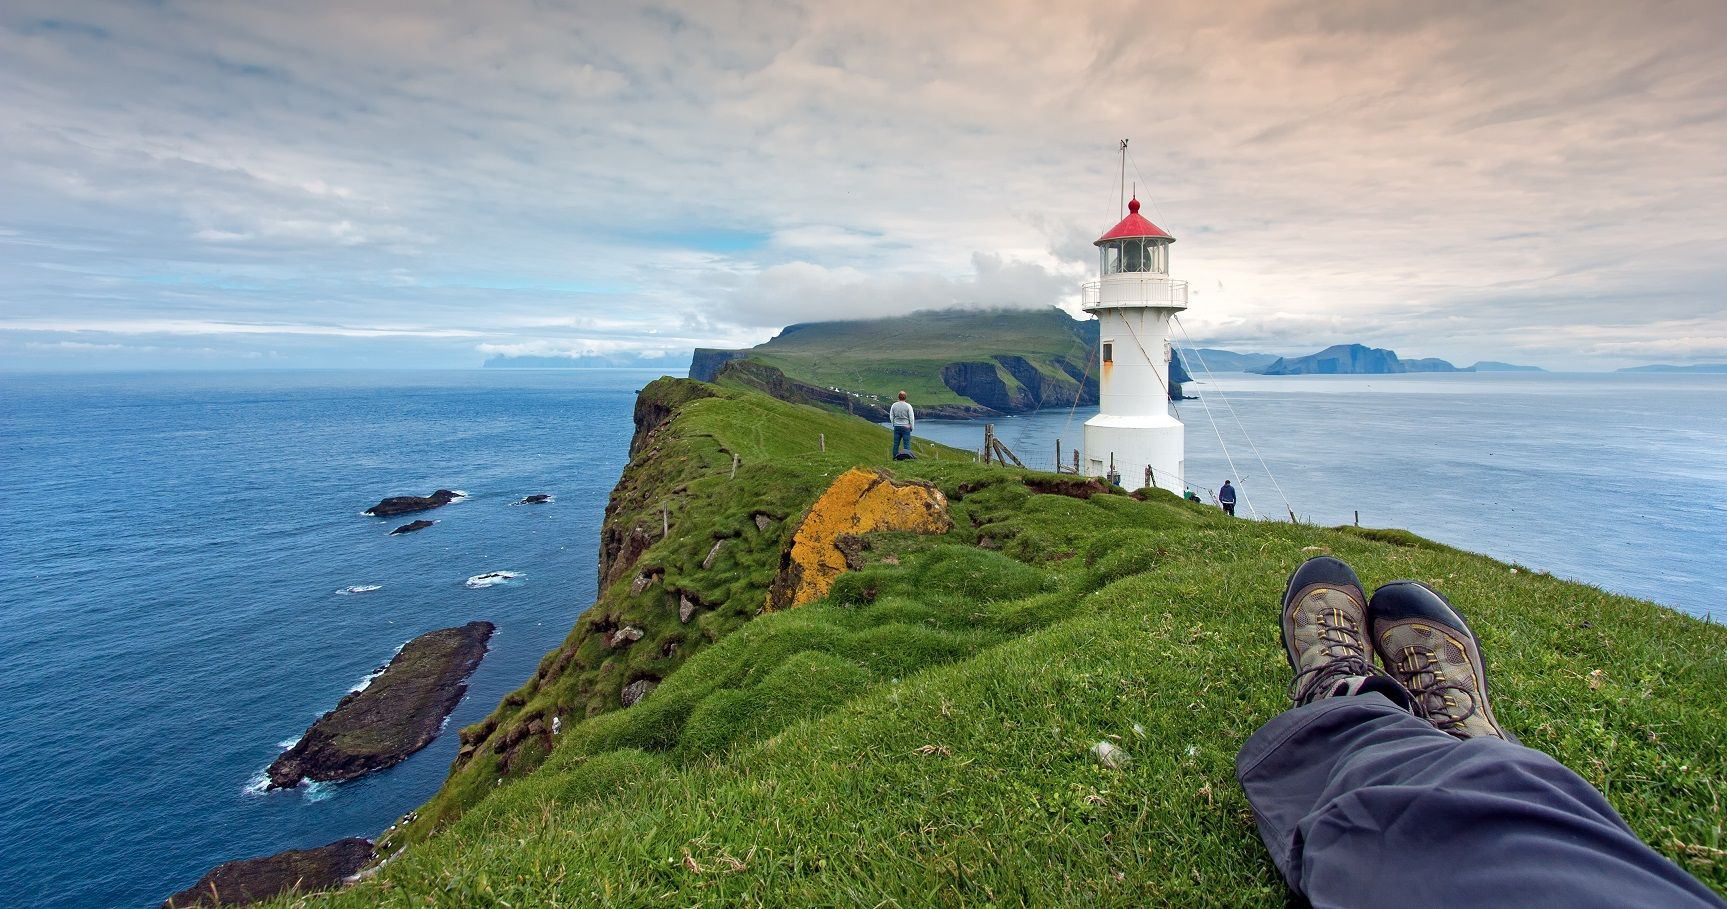 10 Things You Don't Know About The Faroe Islands